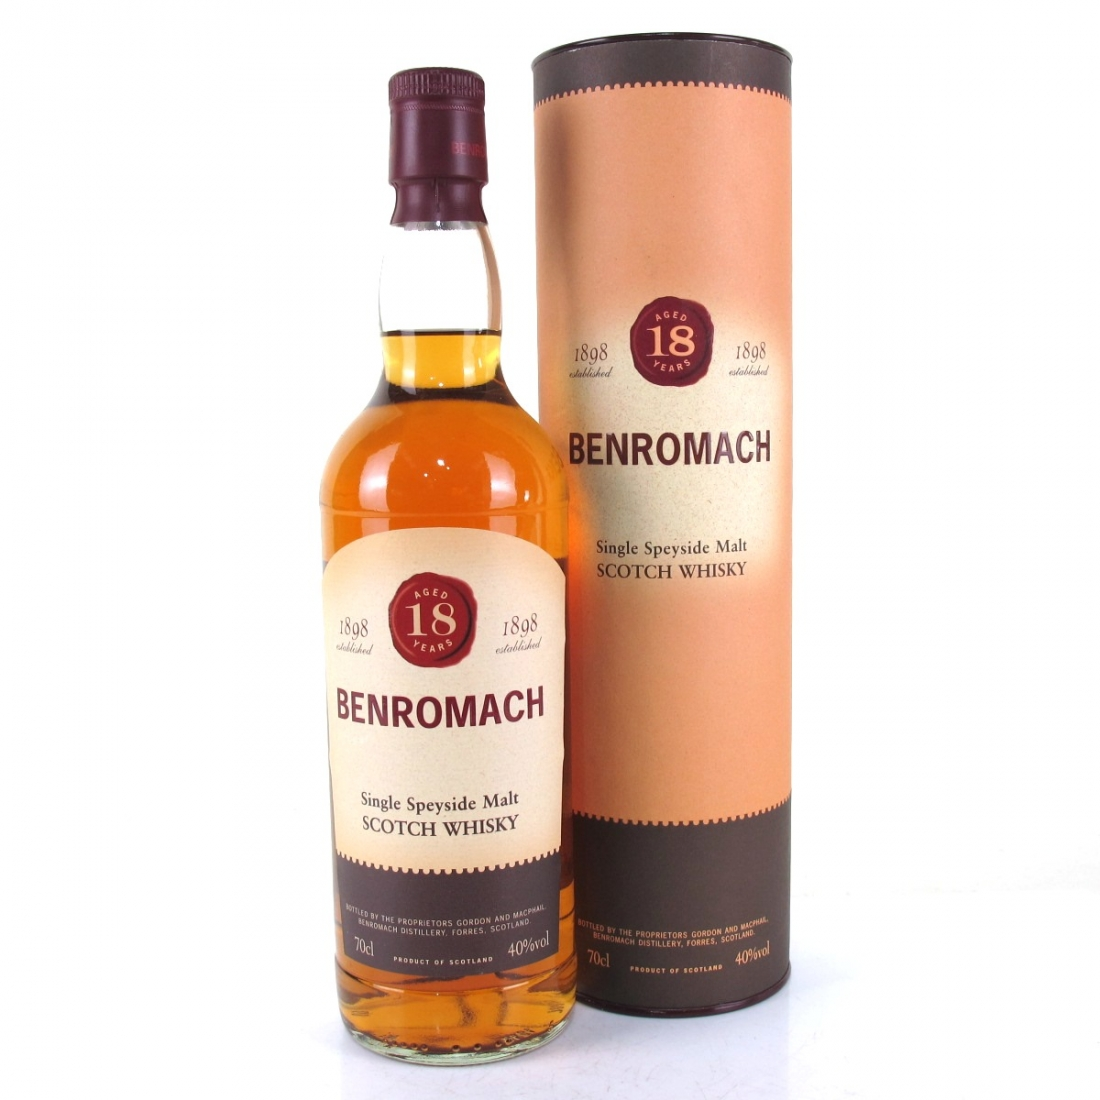 Benromach 18 Year Old